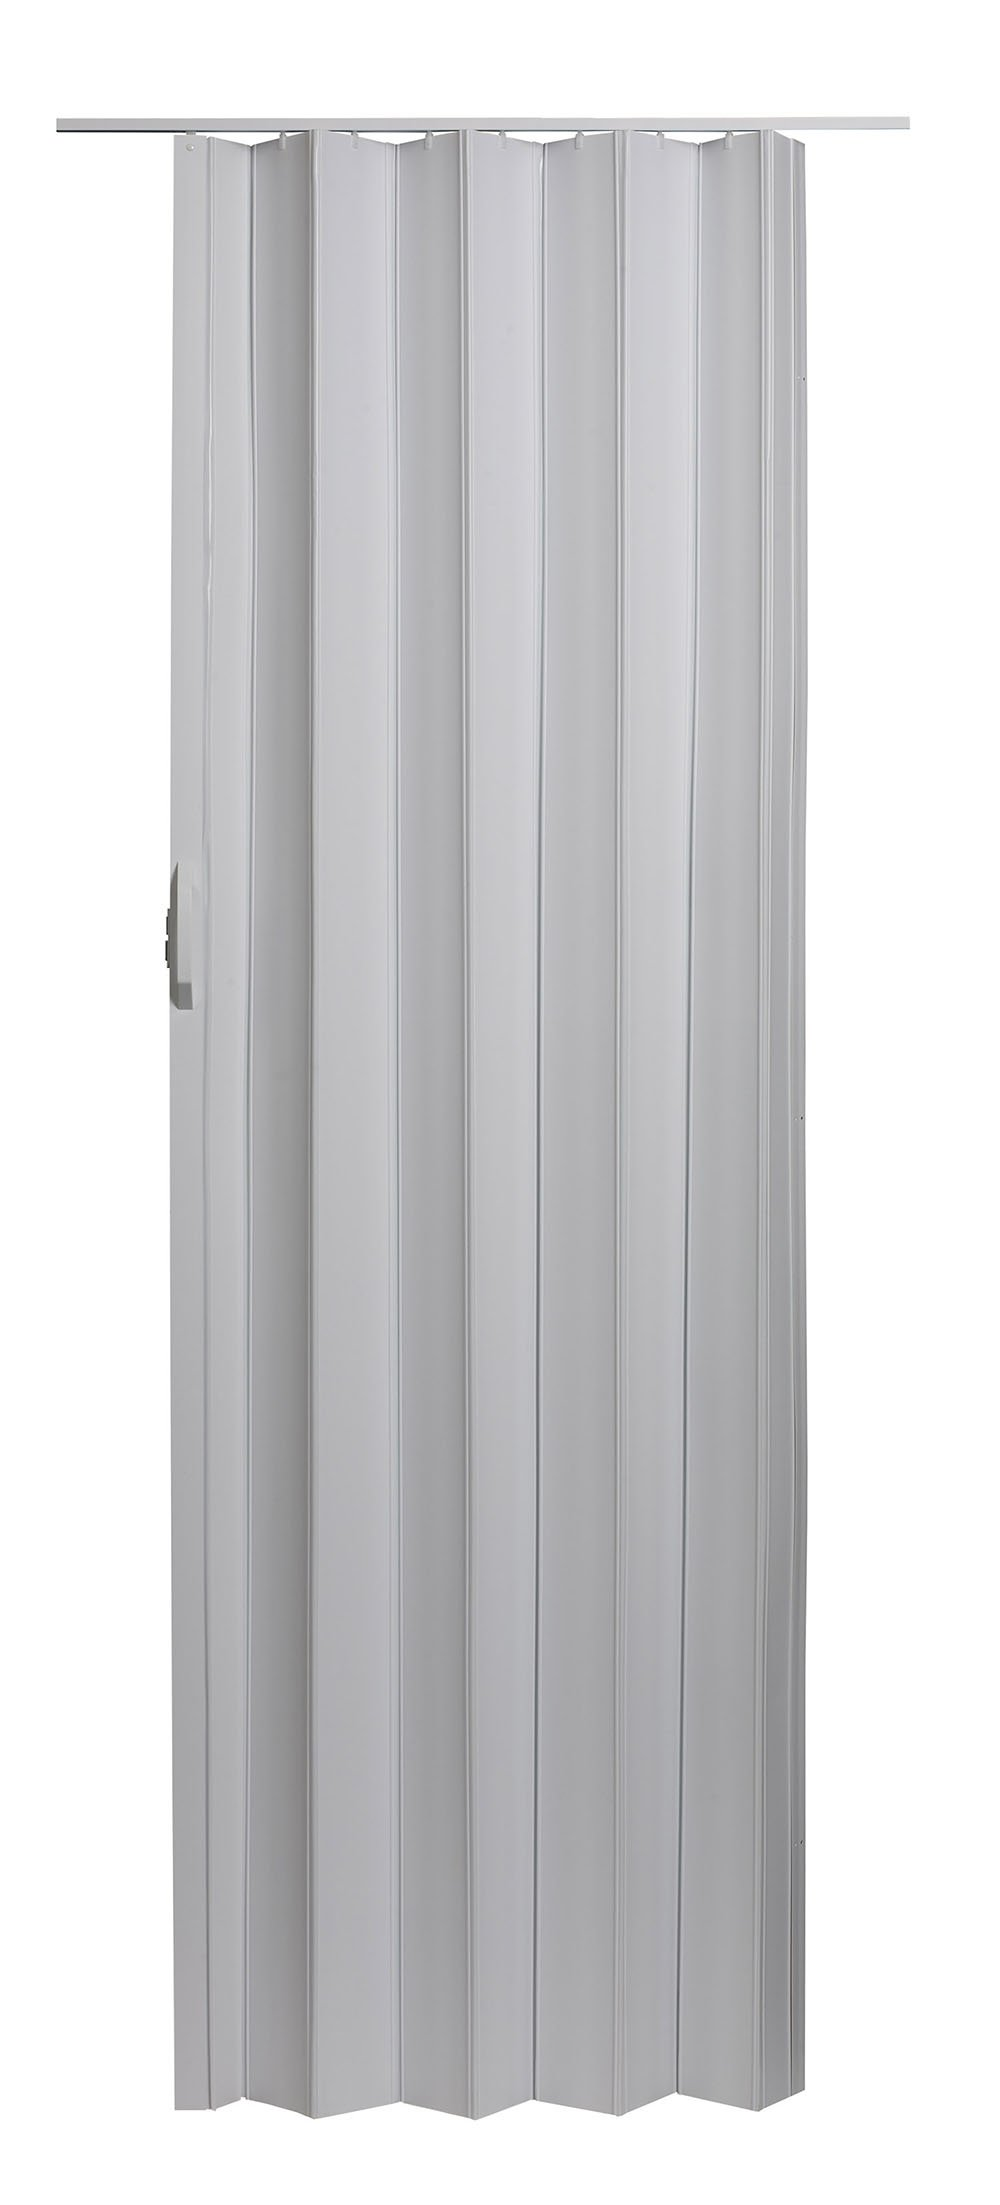 Spectrum VS3280H Via 24'' to 36'' x 80'' Accordion Folding Door, White by LTL Home Products